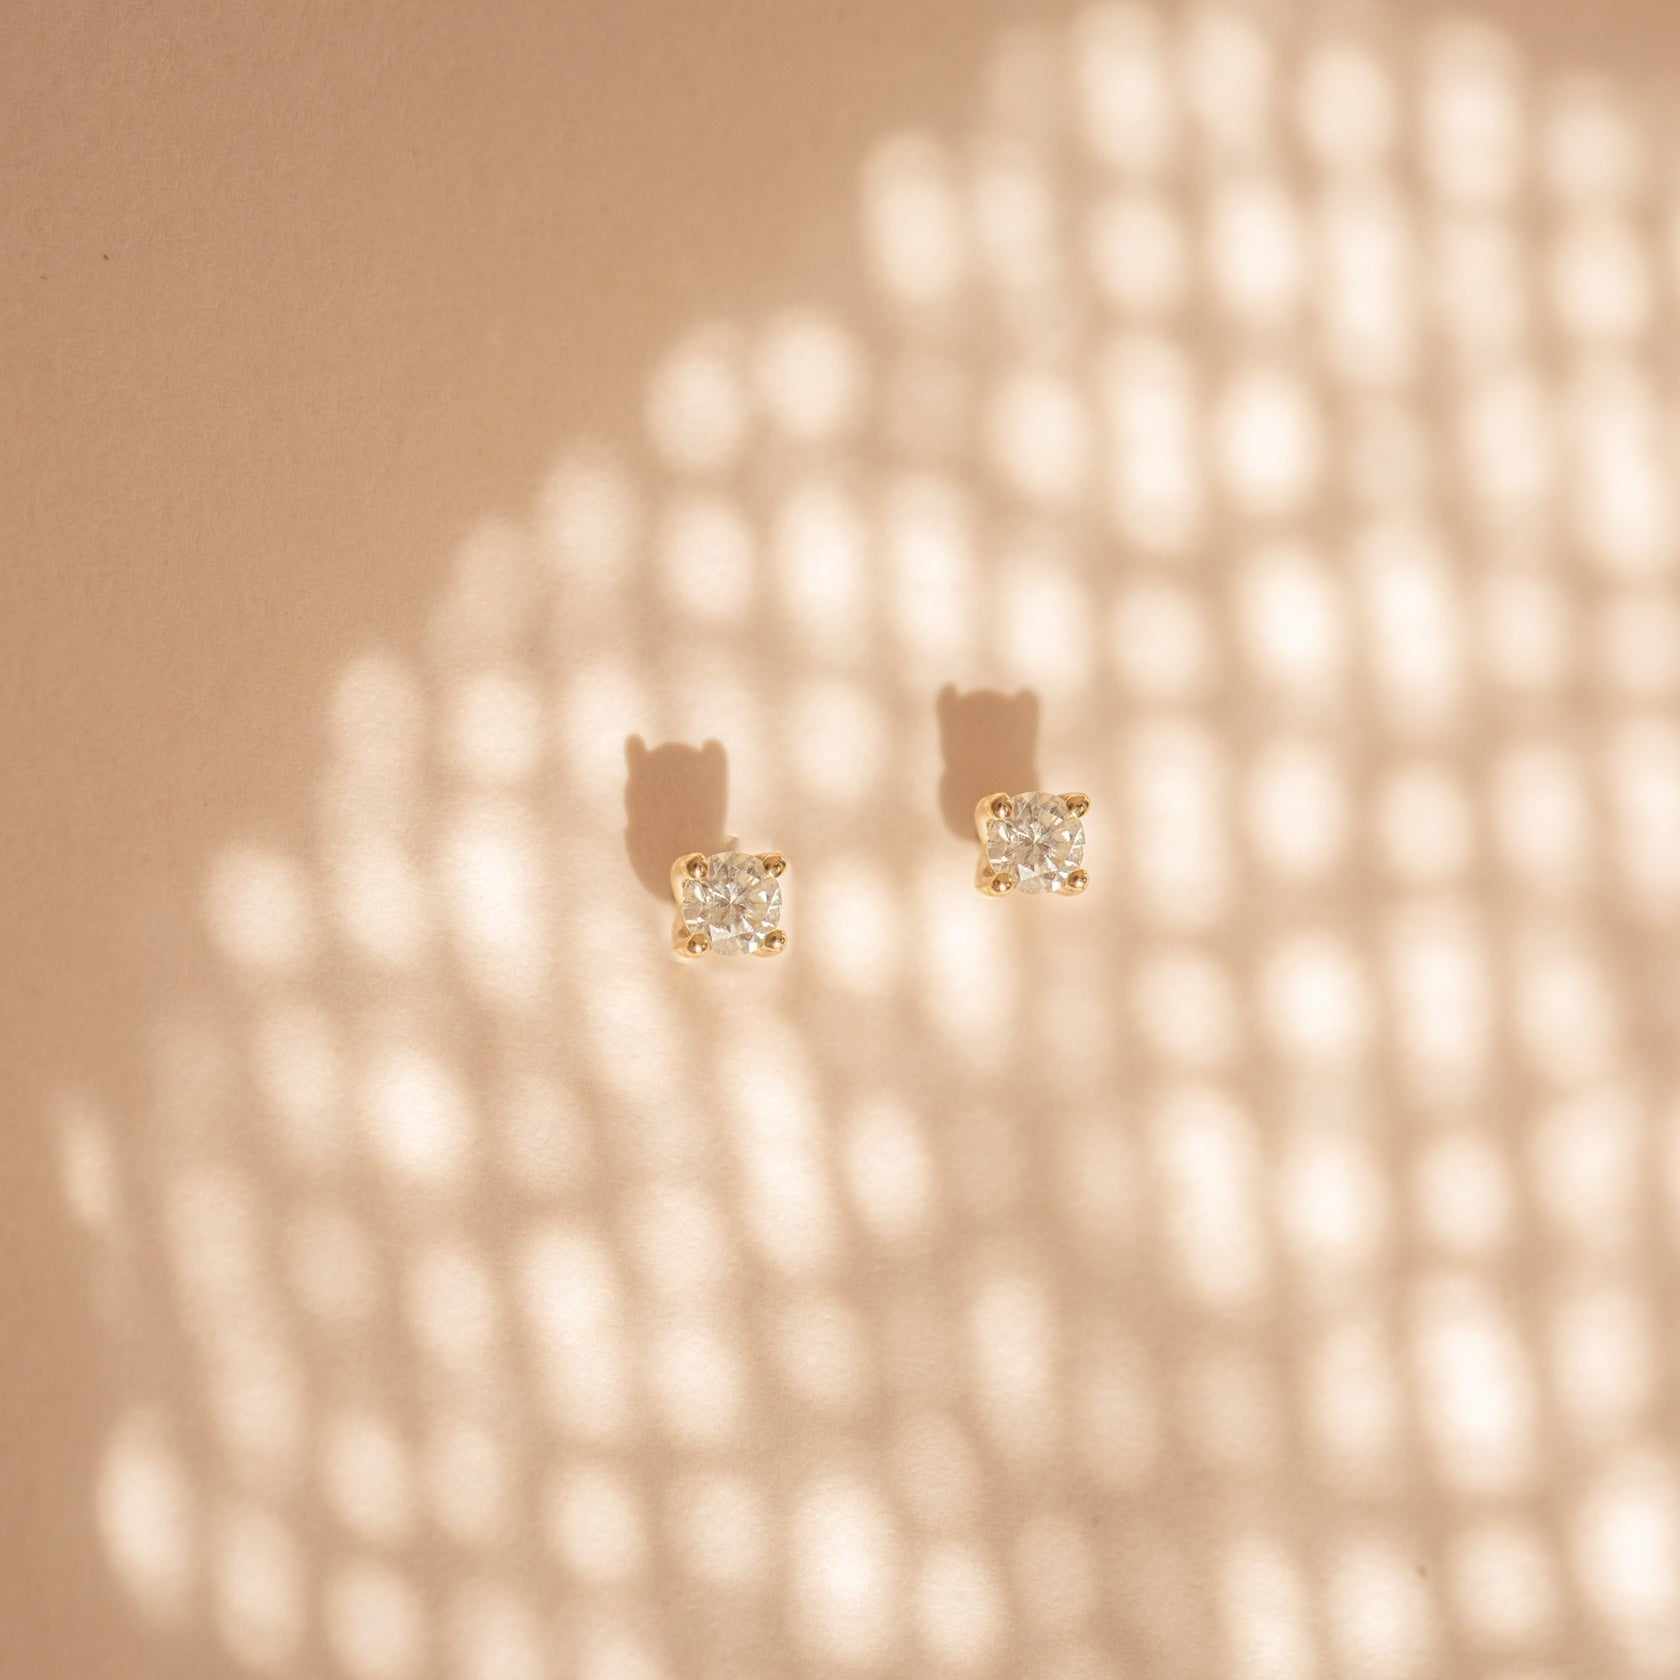 2.5mm Diamond Studs - 14k Solid Gold